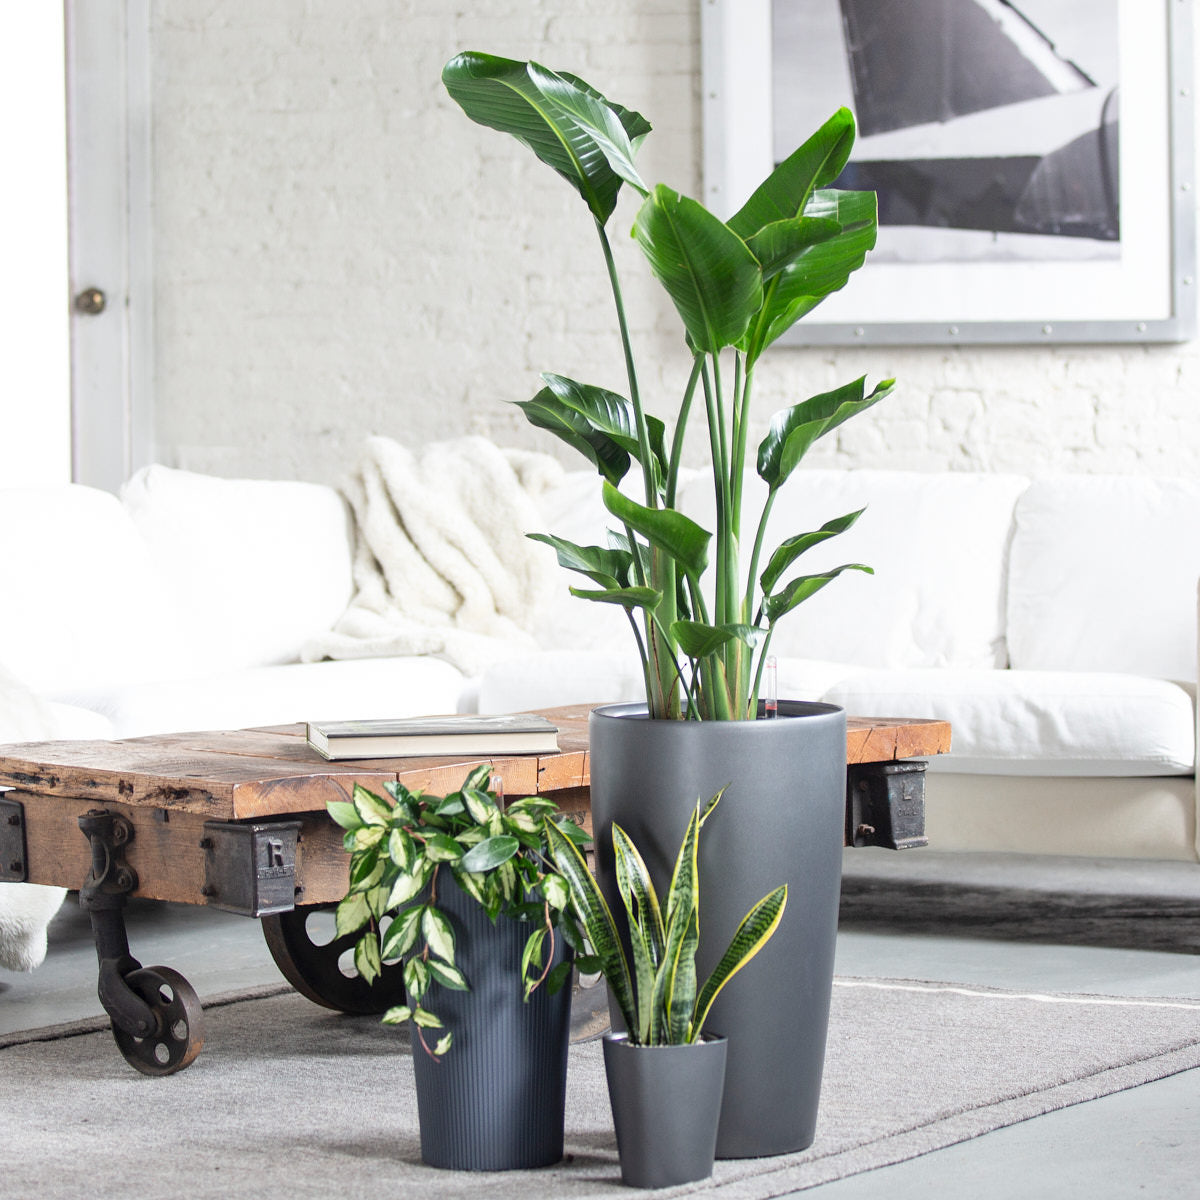 Nolita Plant Bundle - Charcoal | 3 Plants In The Bundle - My City Plants